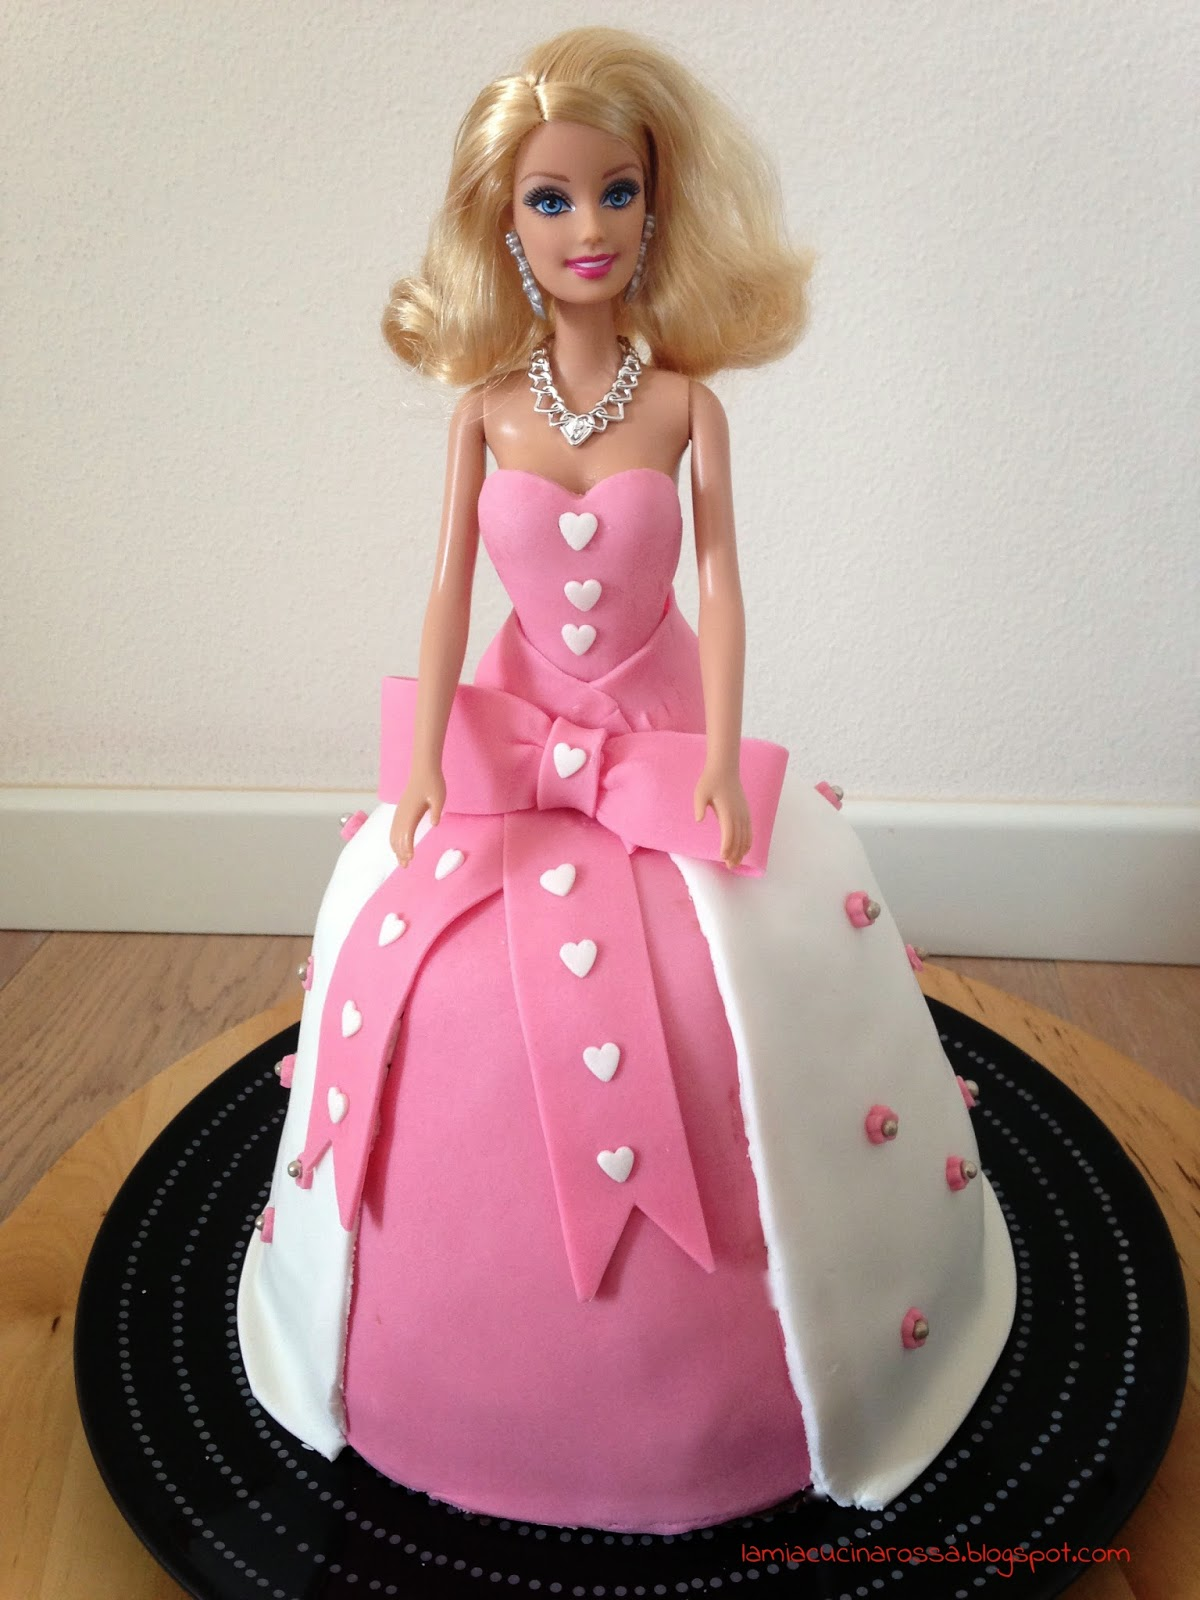 Torta Barbie for dummies (e se ce l'ho fatta io..)